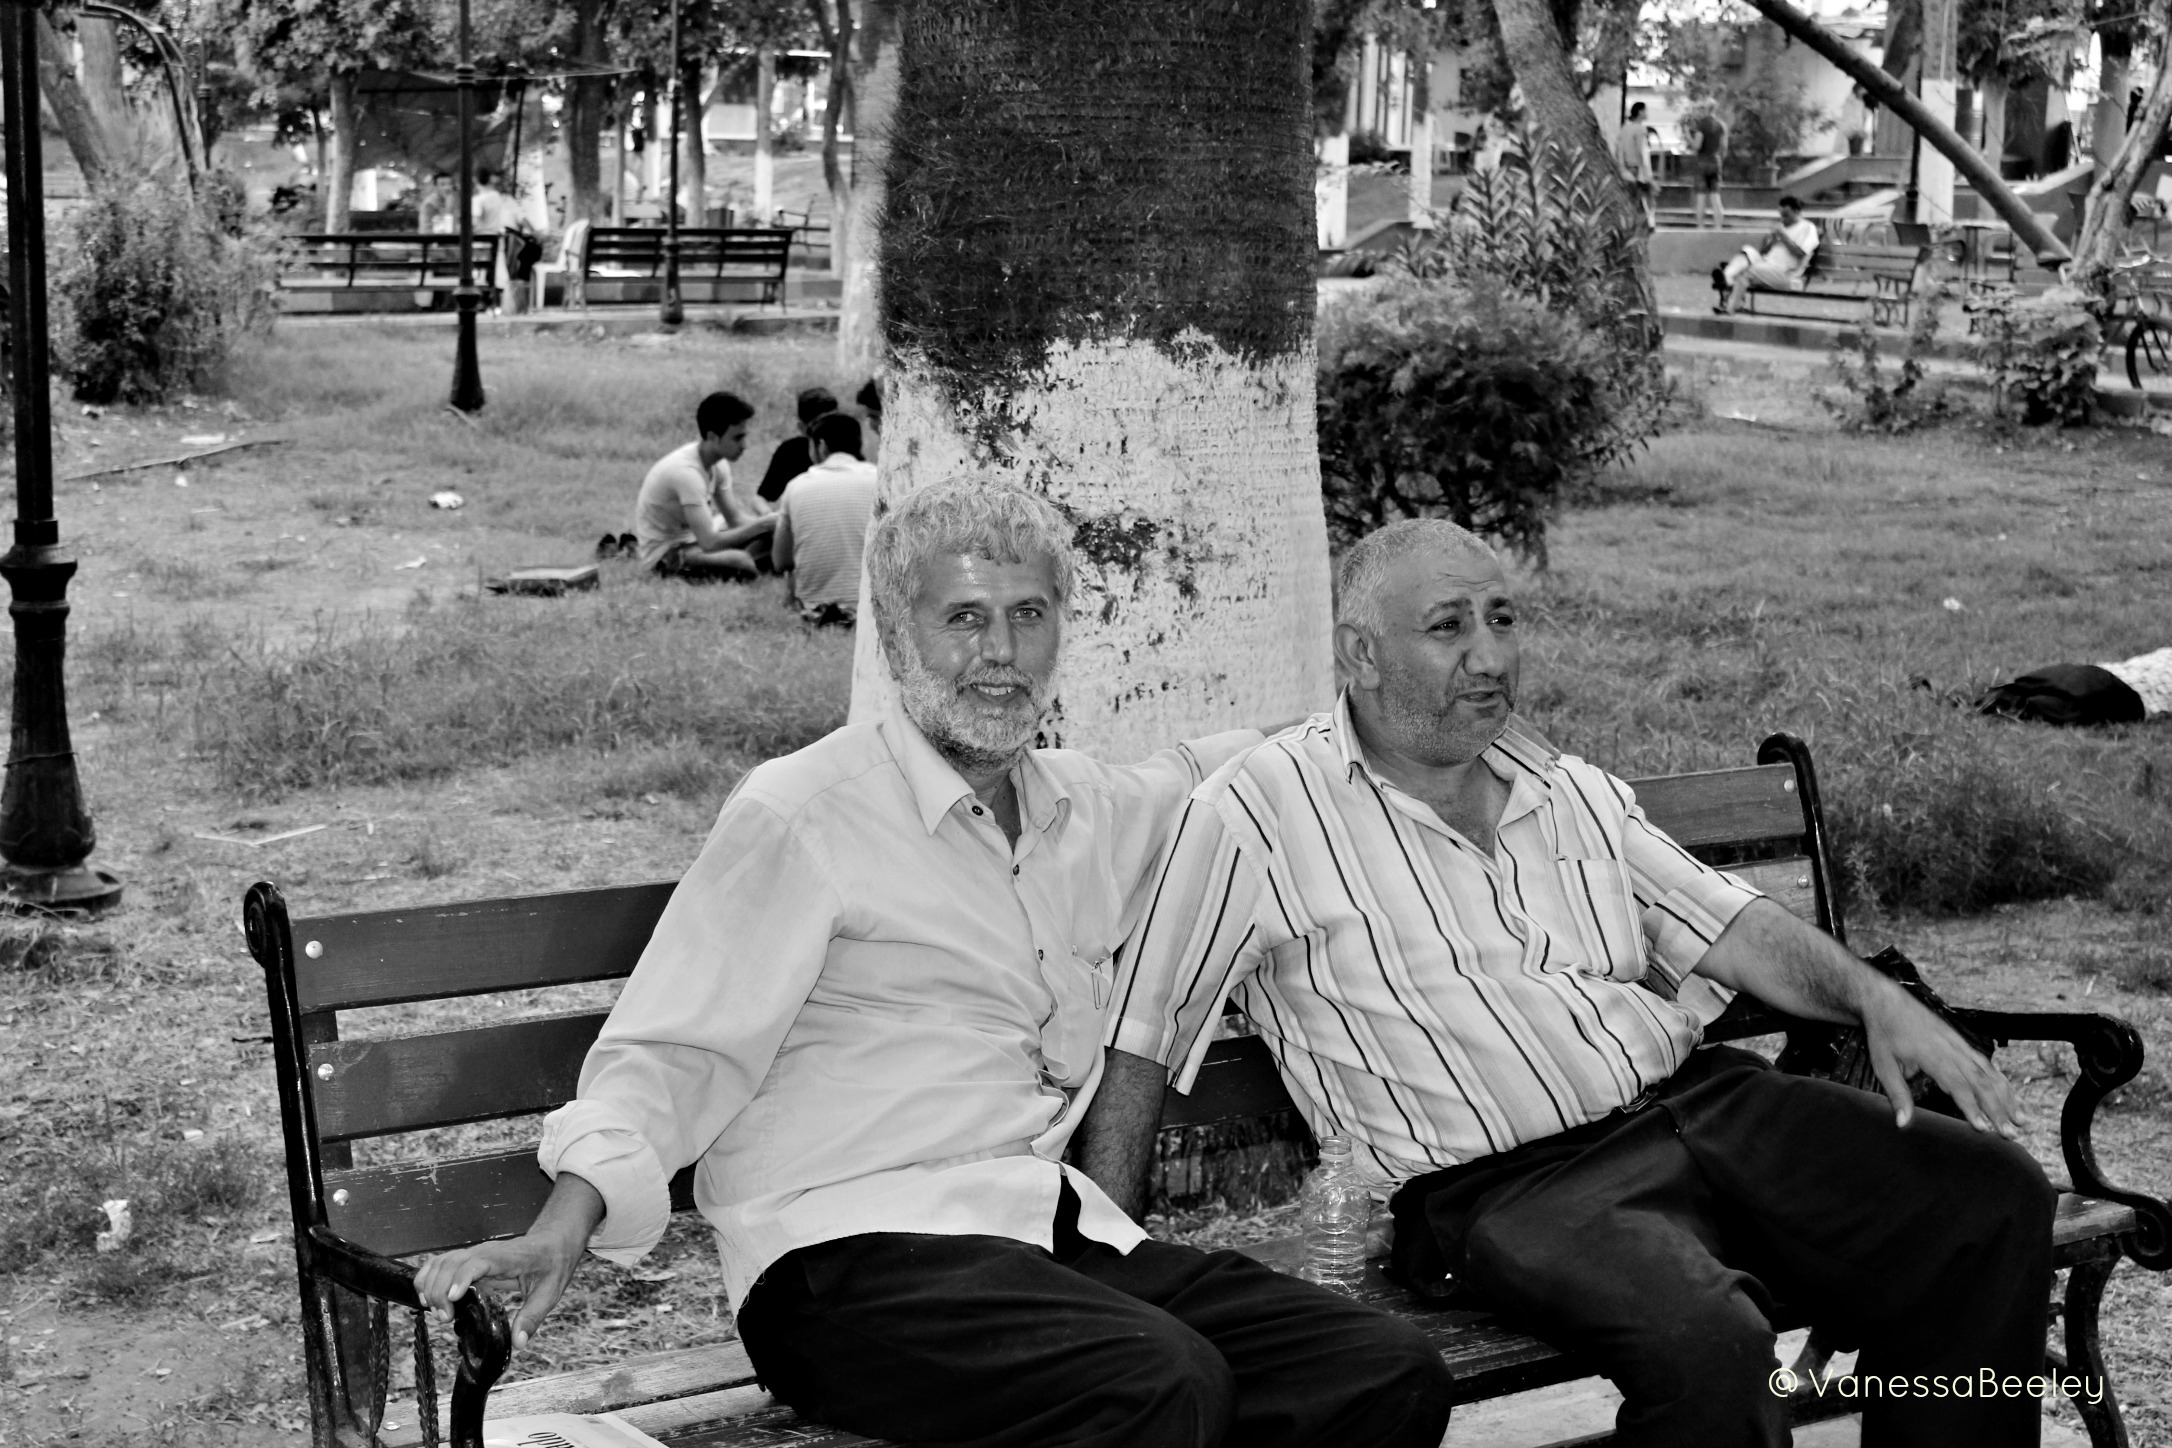 Two men enjoying a moment of respite from the war raging around them. (Photo by Vanessa Beeley)